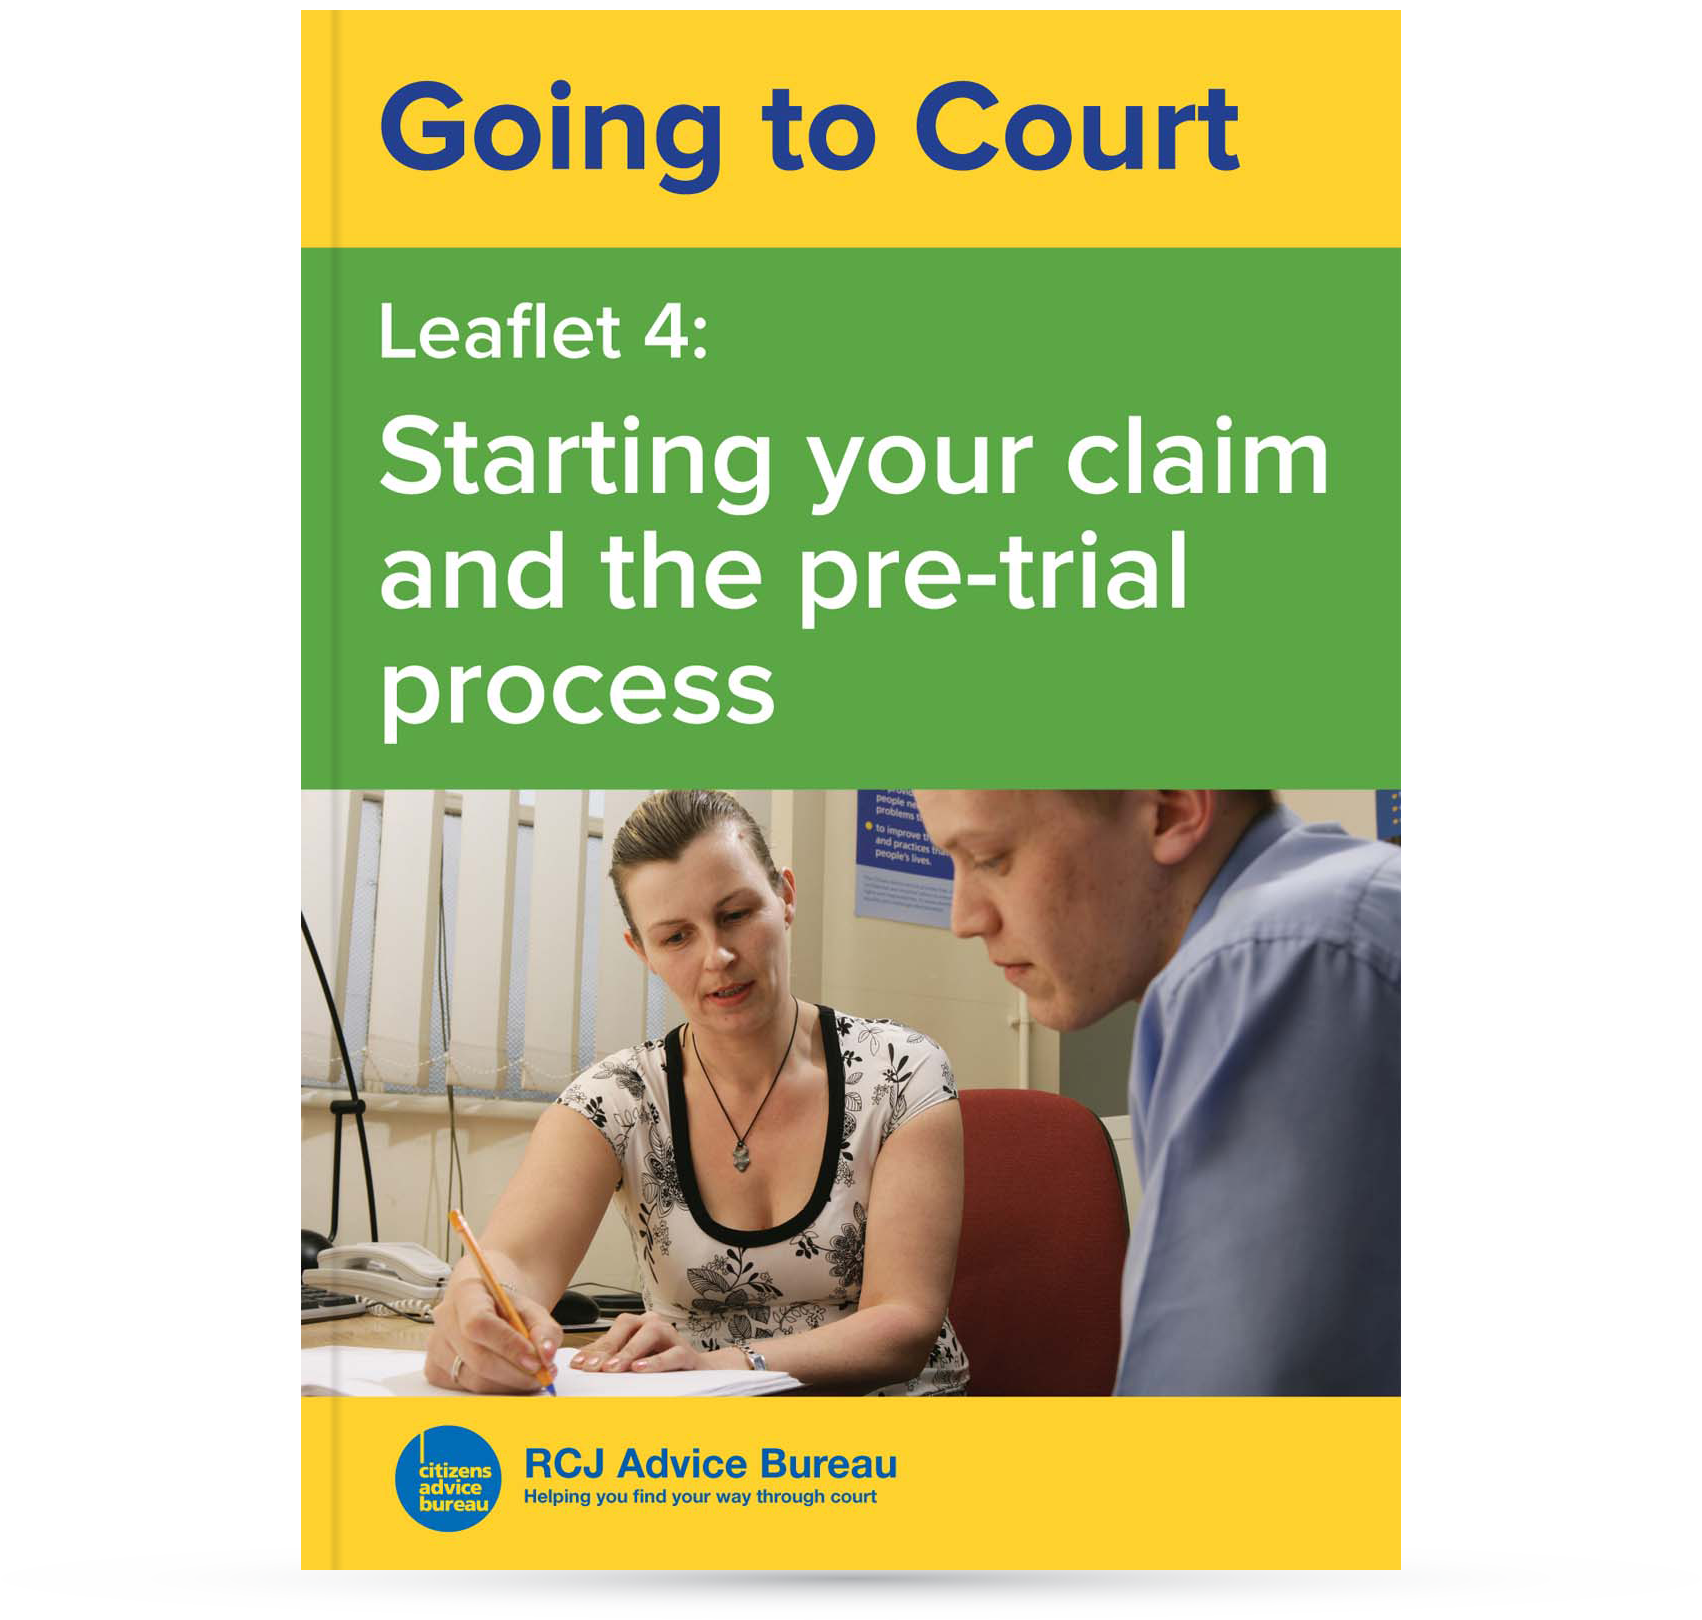 Going To Court 4 Starting Your Claim And The Pre Trial Process